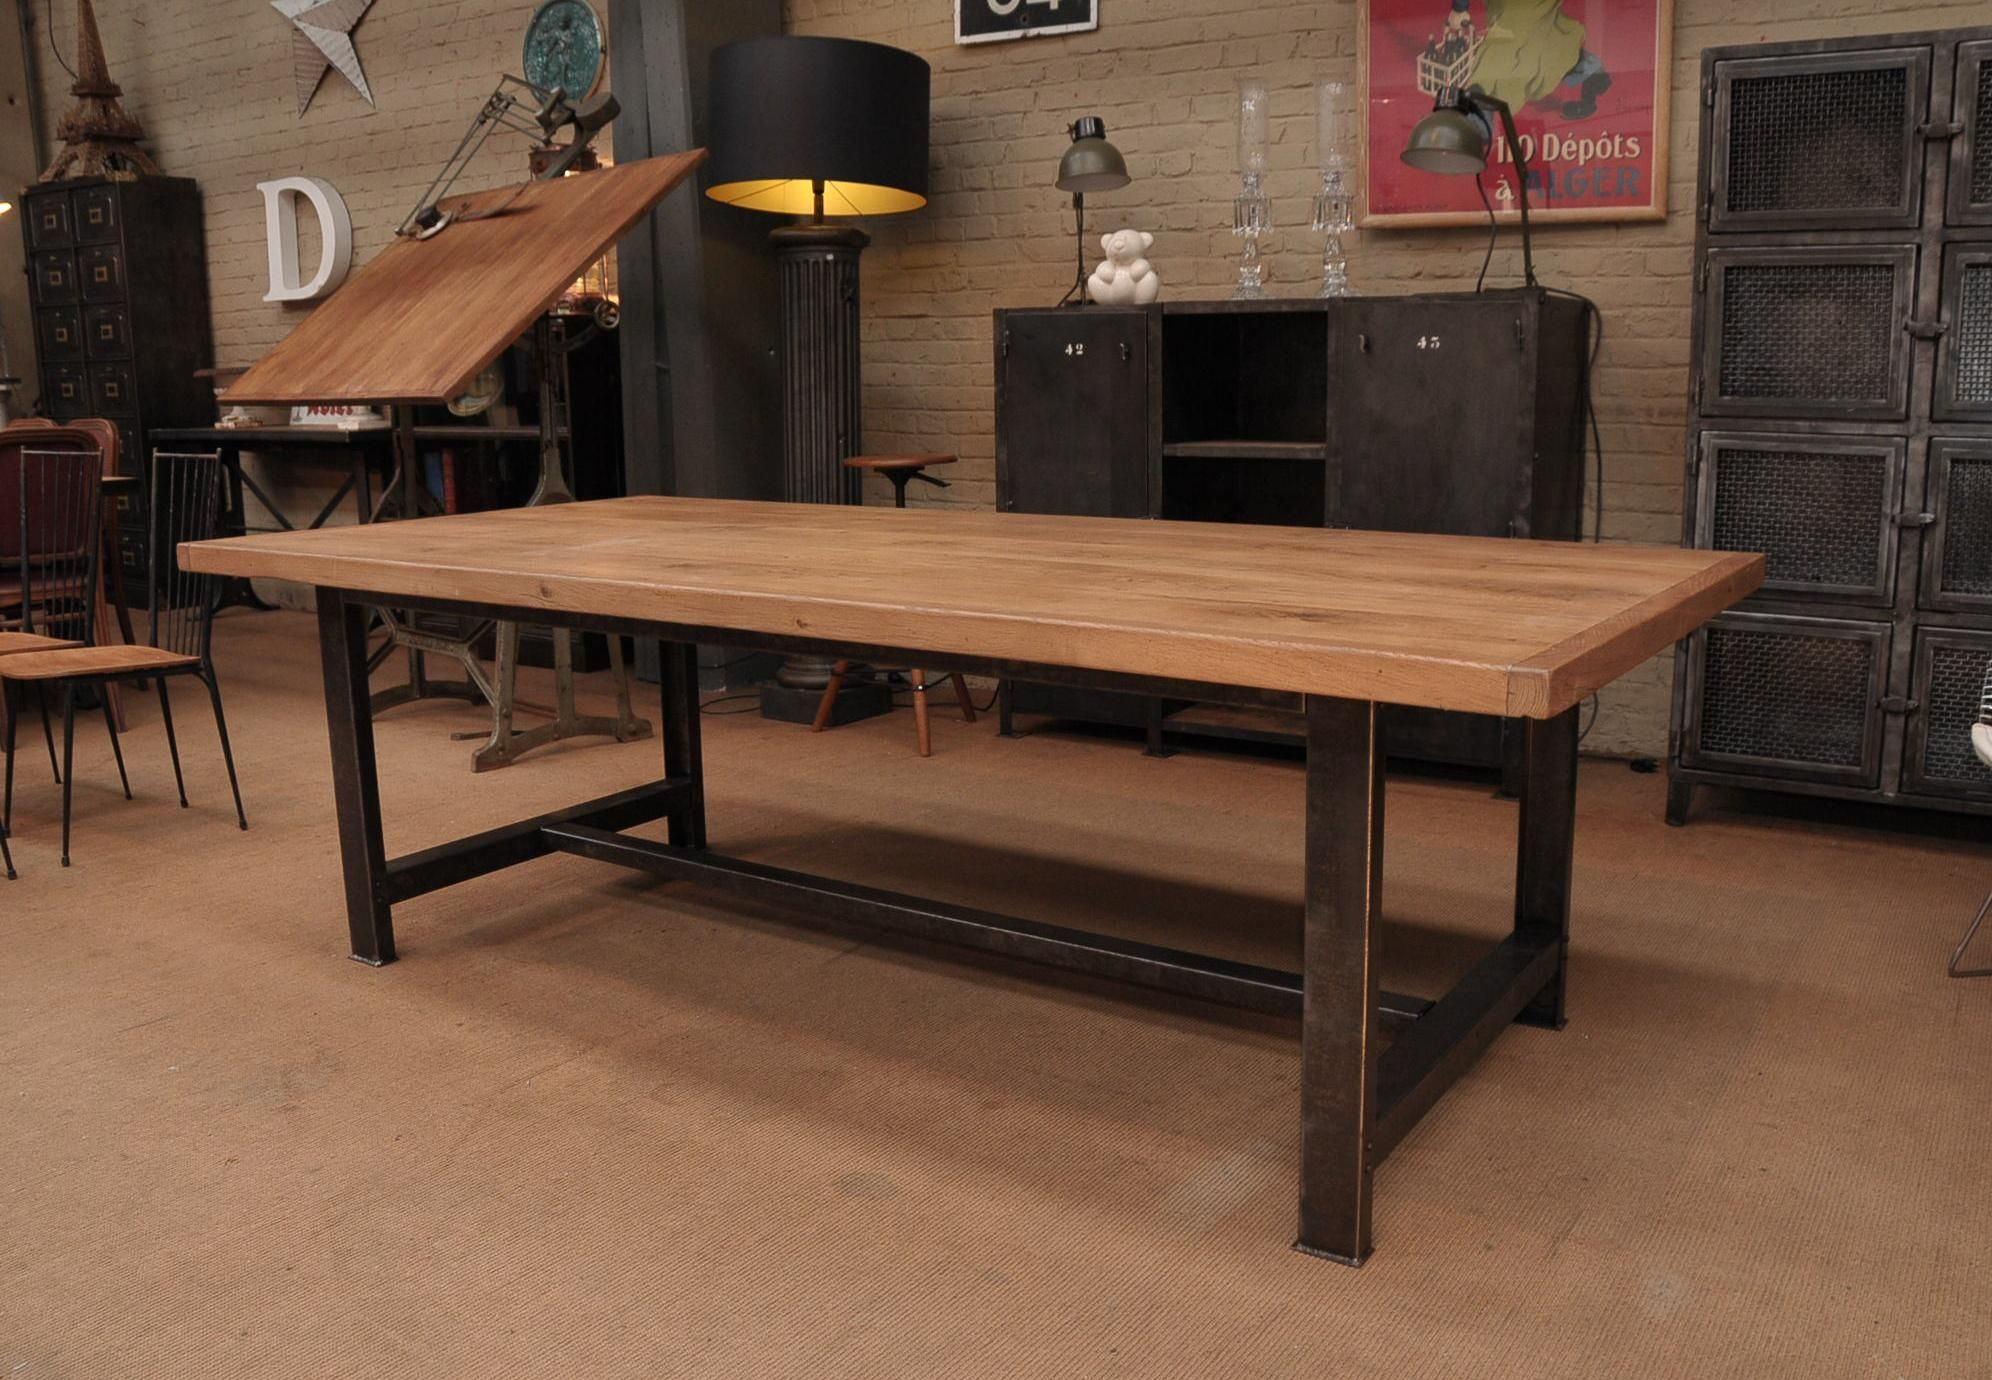 popular-industrial-dining-table-made-of-solid-oak-wood-top-and-in